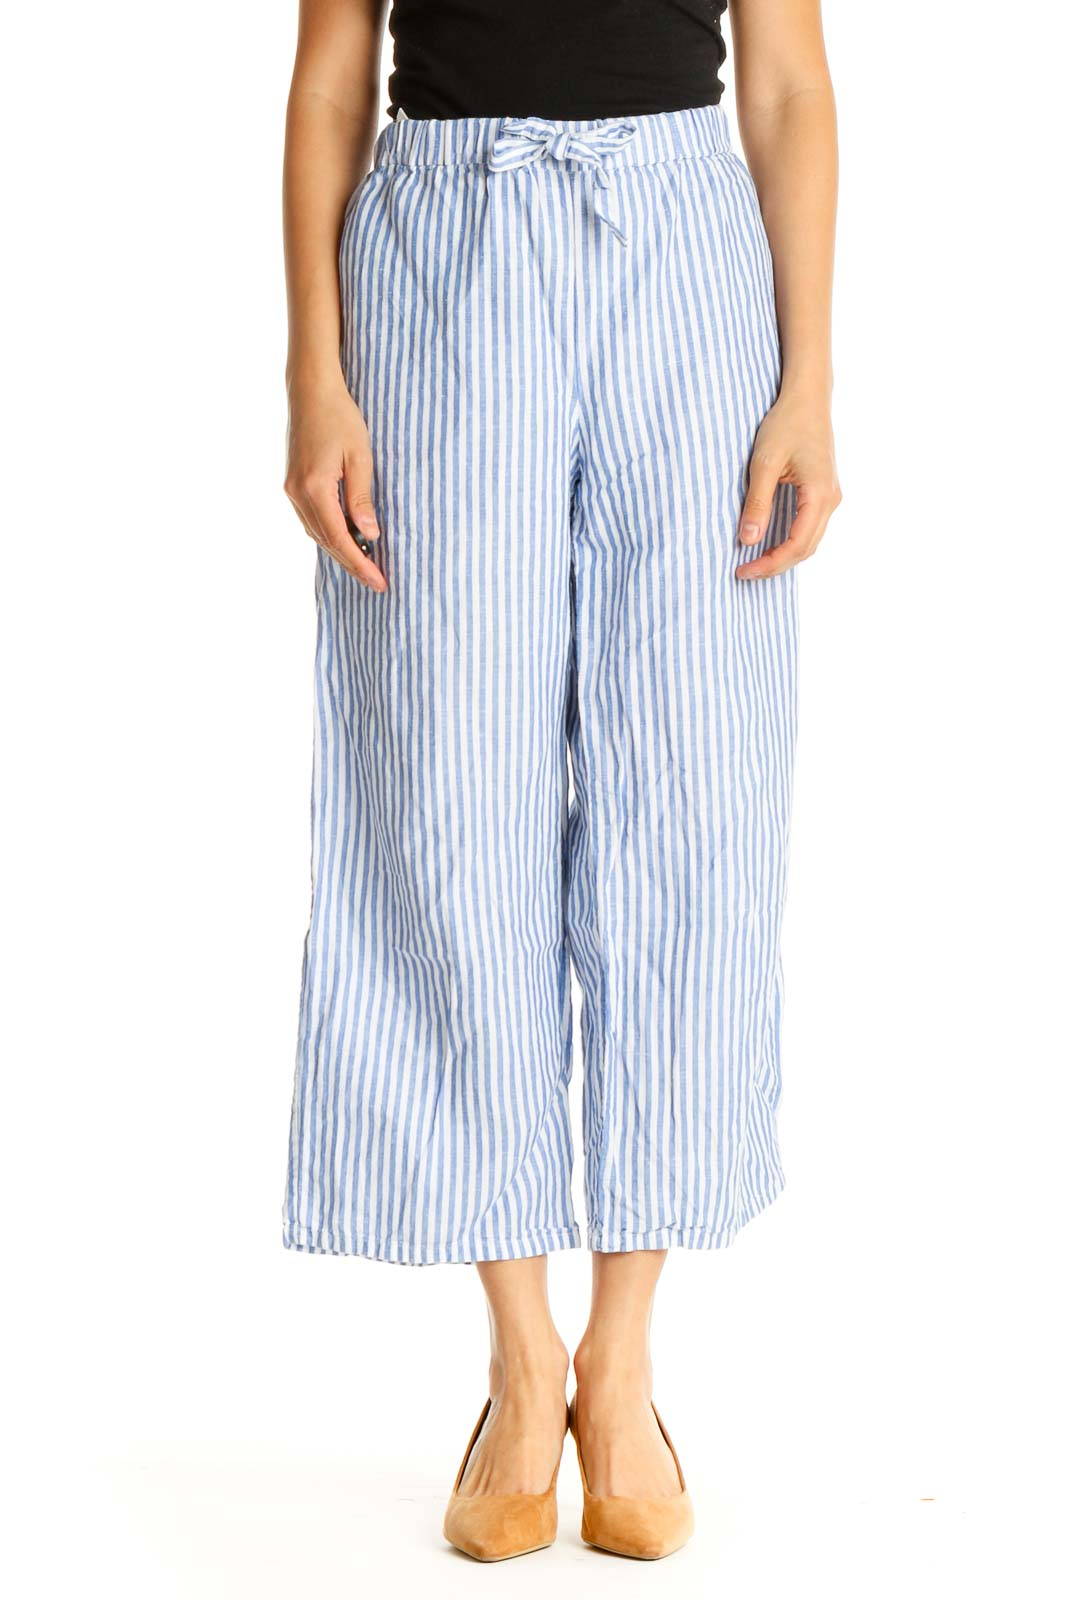 Blue Striped All Day Wear Culottes Pants Front